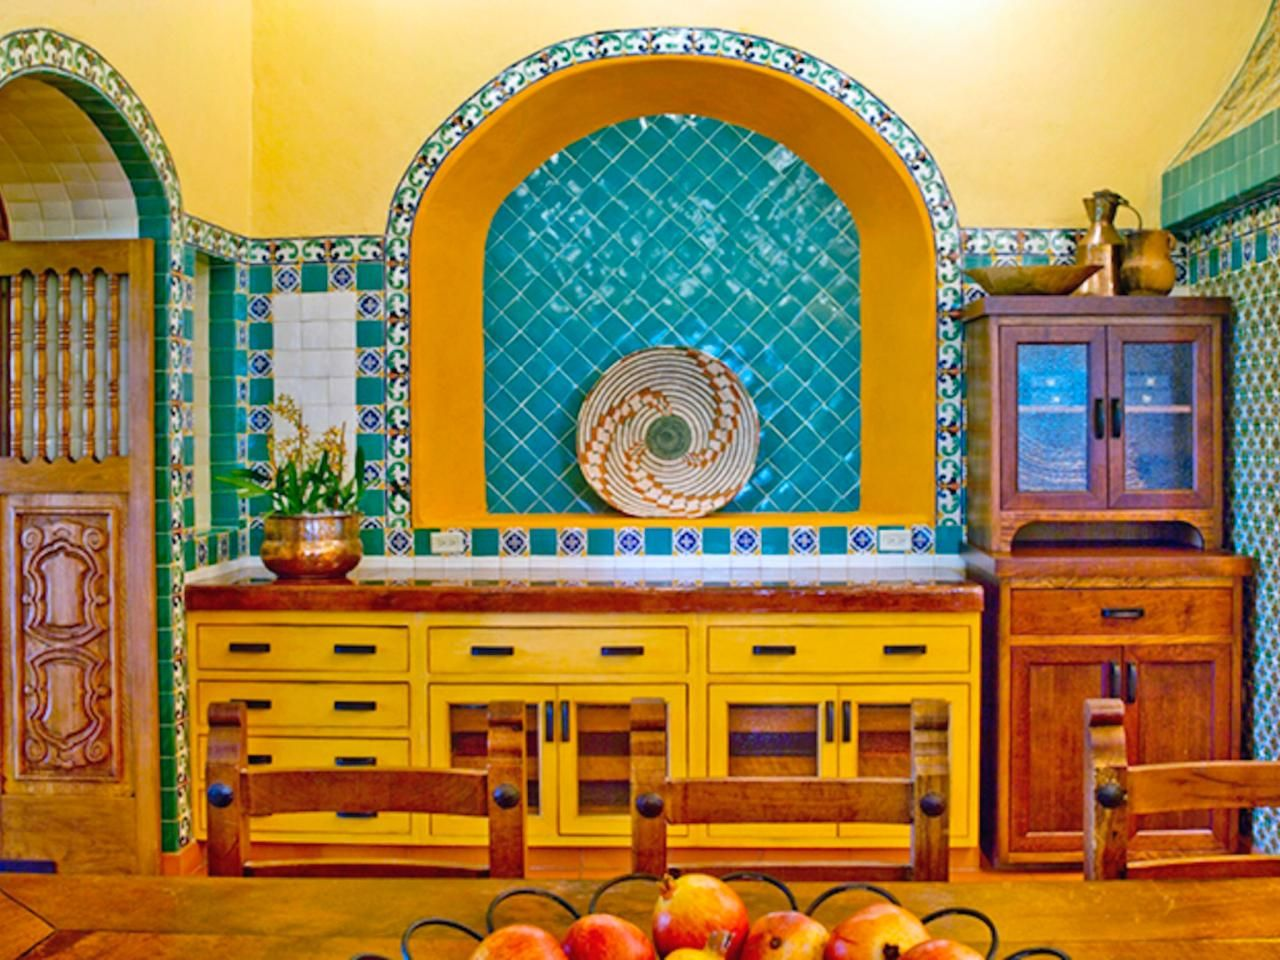 Colorful Kitchen 30 Colorful Kitchen Design Ideas From Hgtv Kitchens Colorful